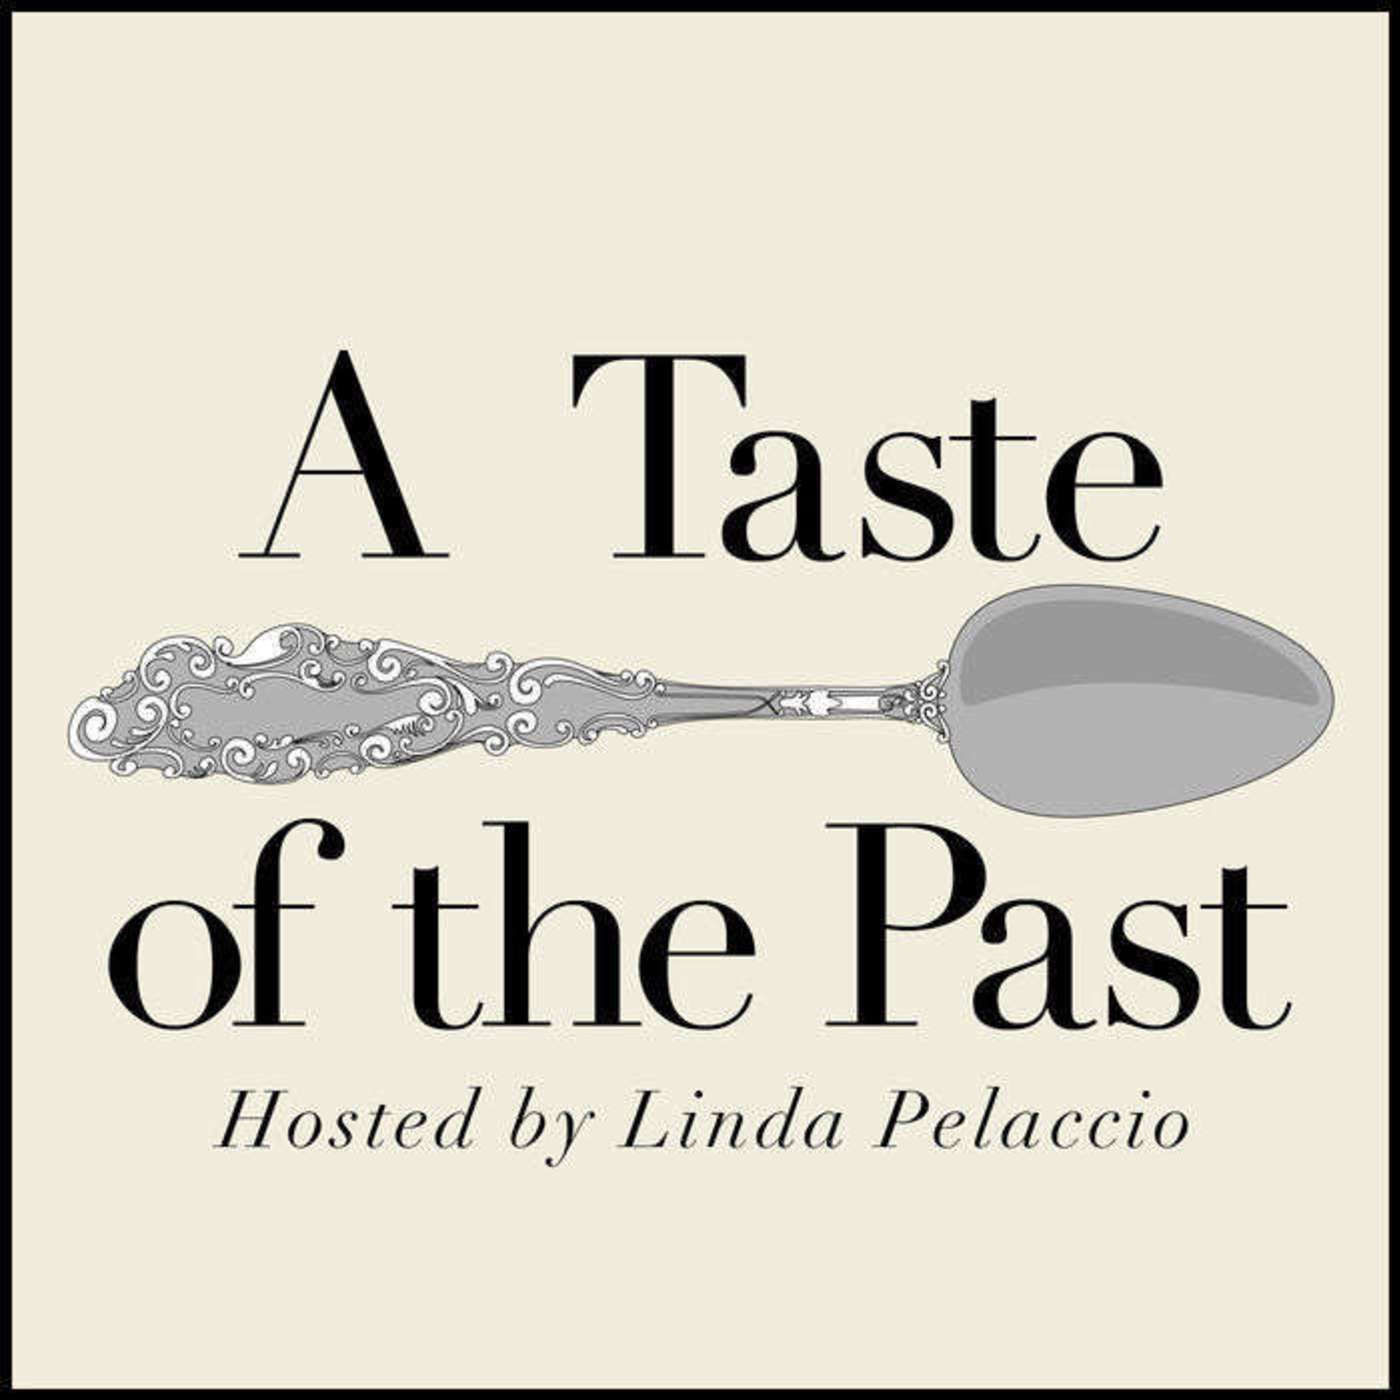 Episode 120: Soy Sauce History with Chef Helen Roberts